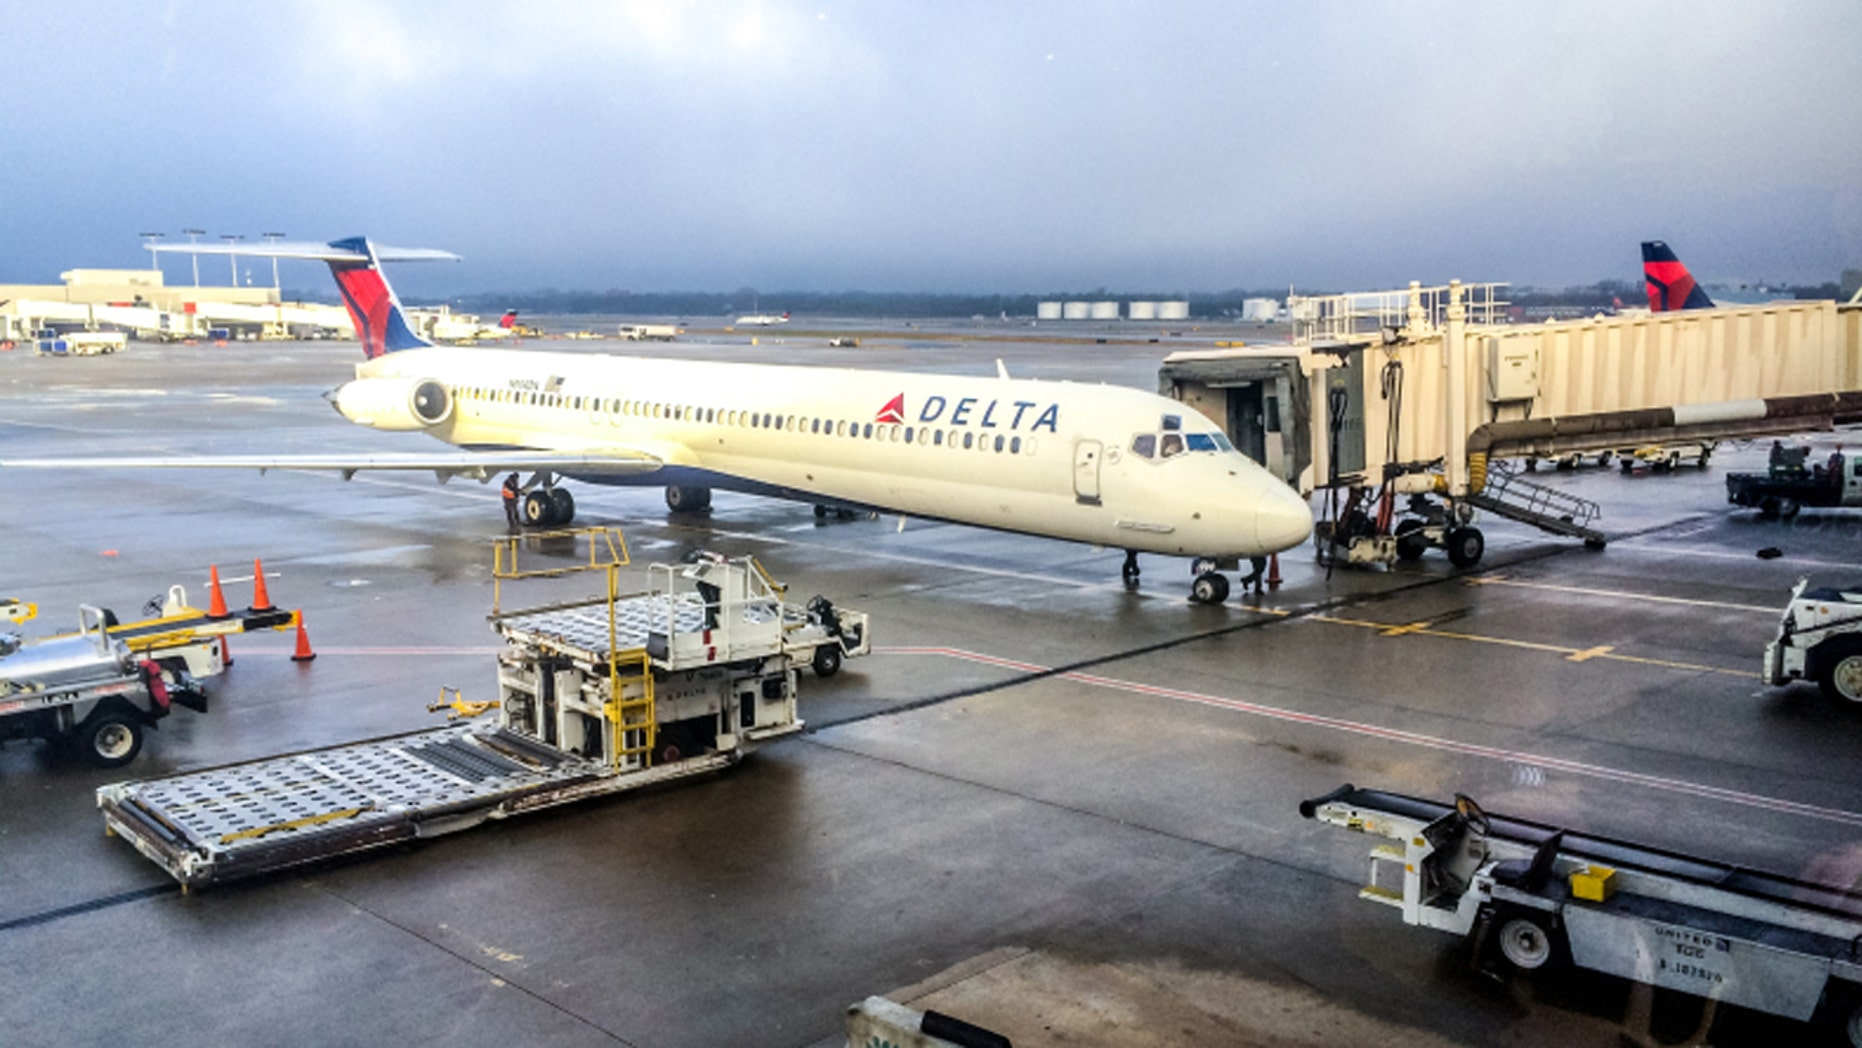 Delta Air Lines delayed a flight after e-cigarette ignited a passenger's backpack.